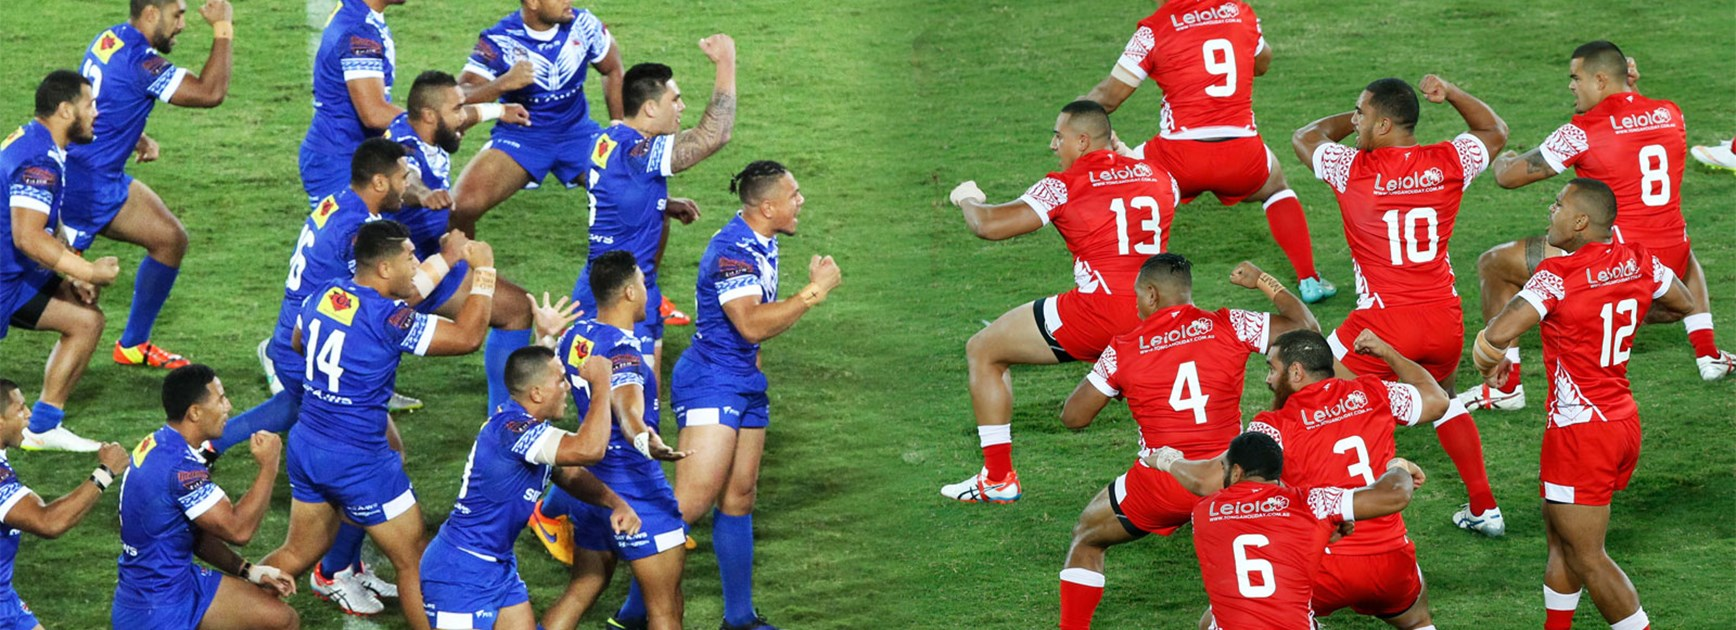 Samoa and Tonga face off with rival war dances.